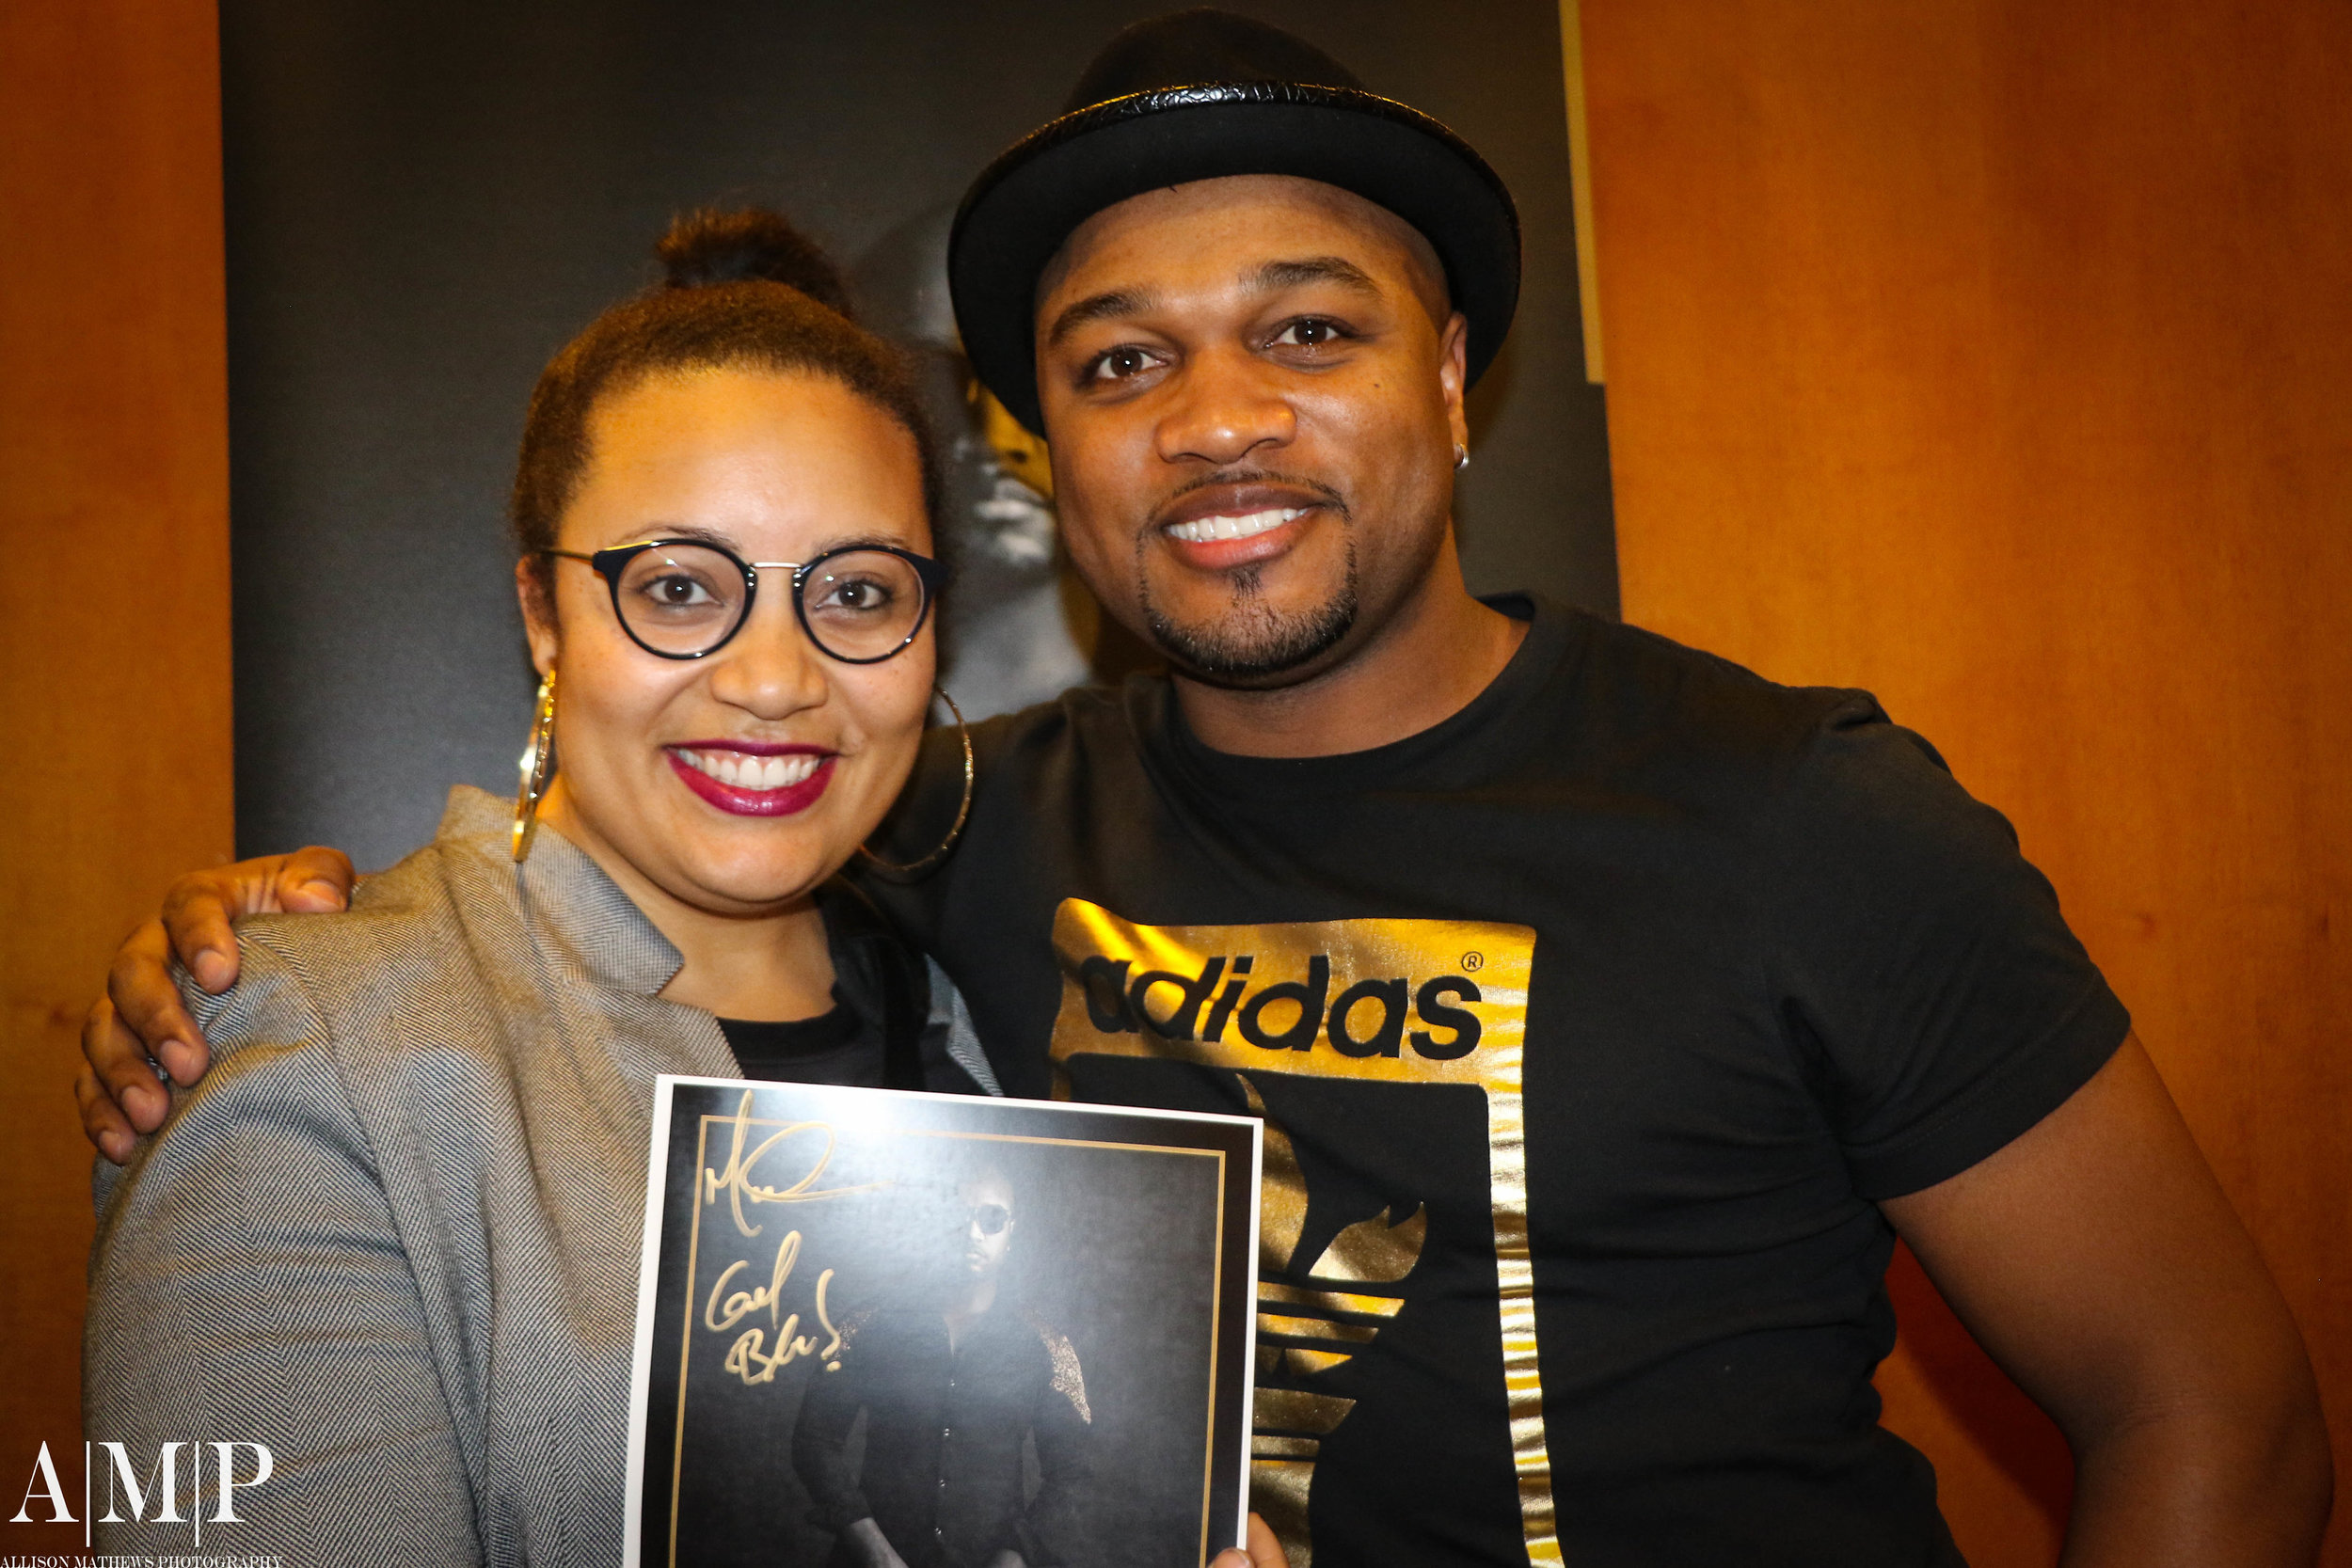 Photographer Dr. Allison Mathews takes a candid pic with Marcus Anderson!